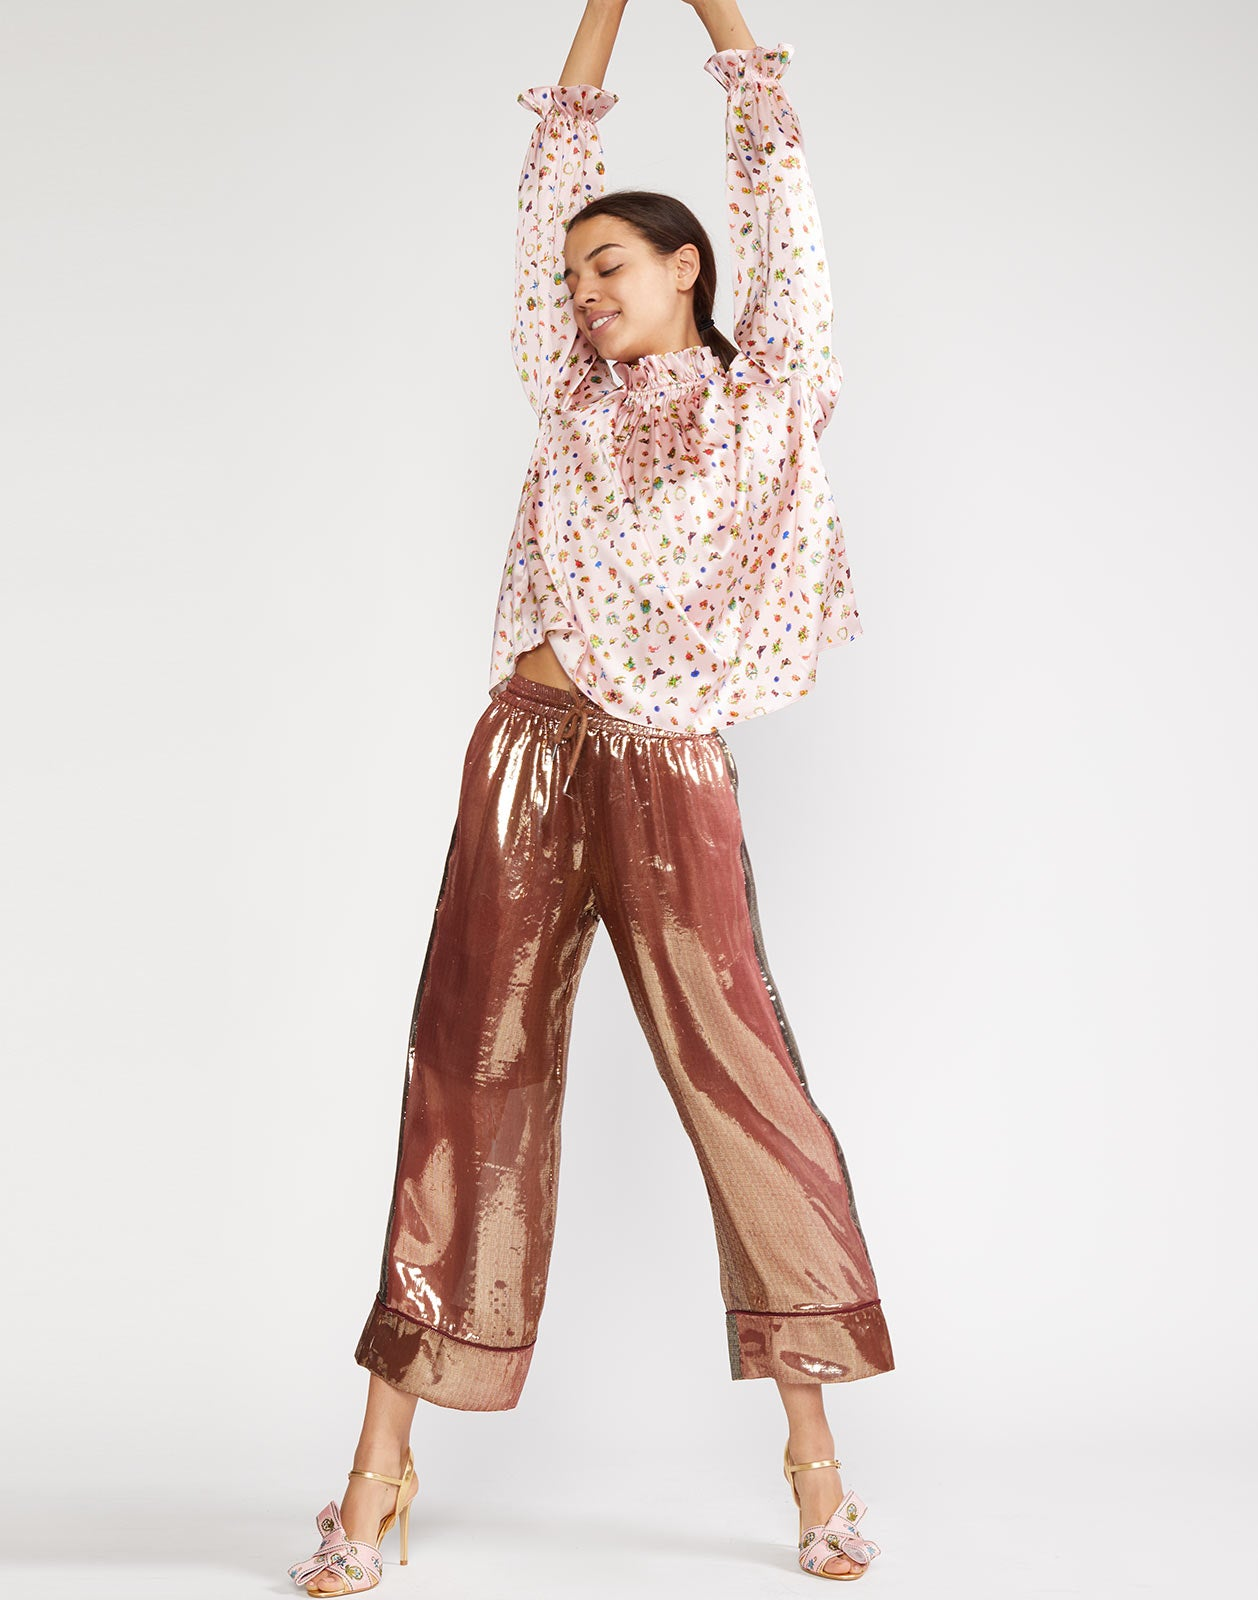 Bronze metallic lamé wide leg pant